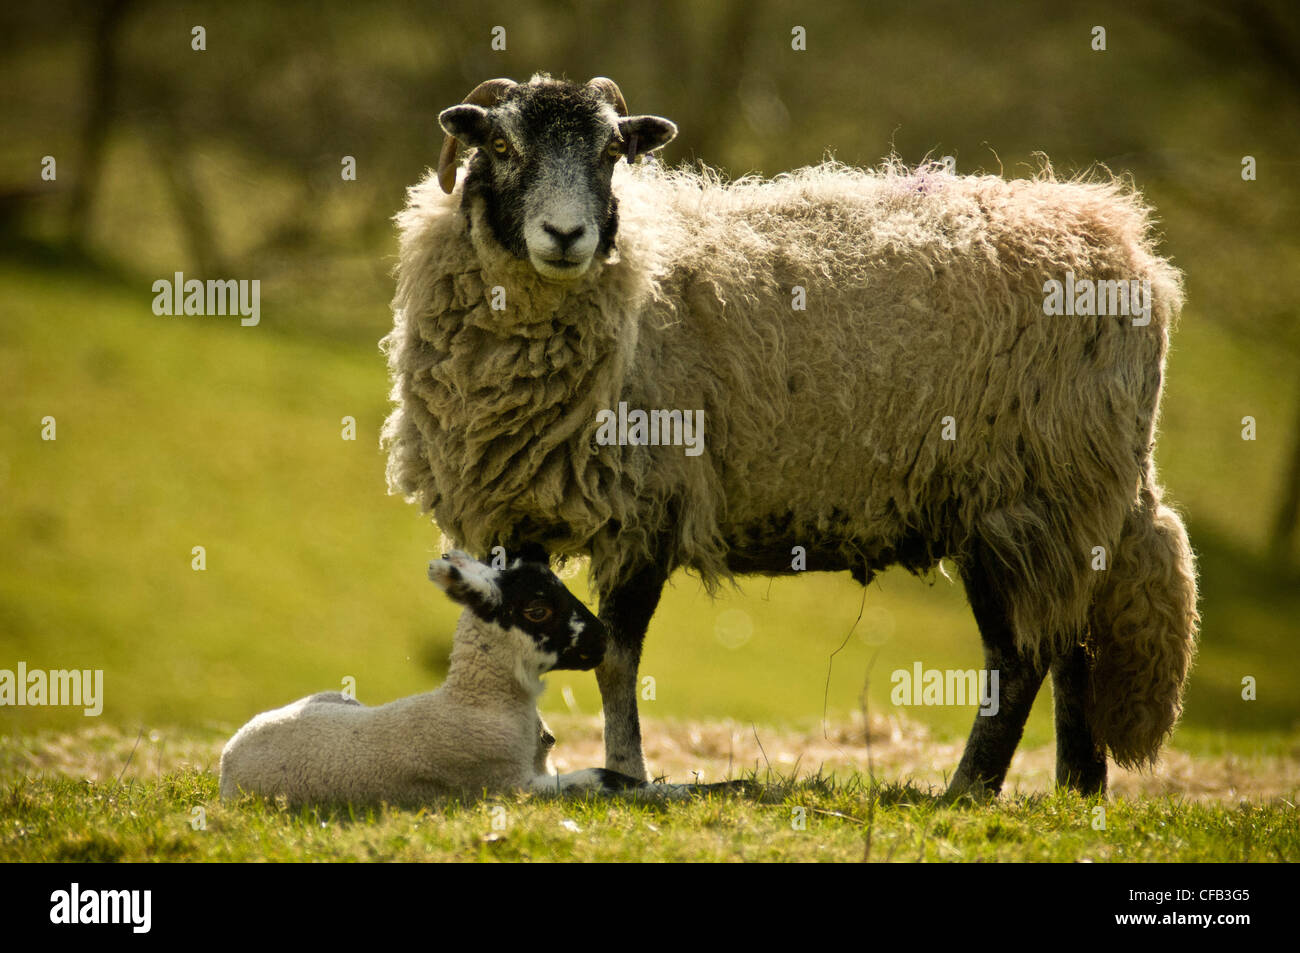 Sheep with lamb - Stock Image